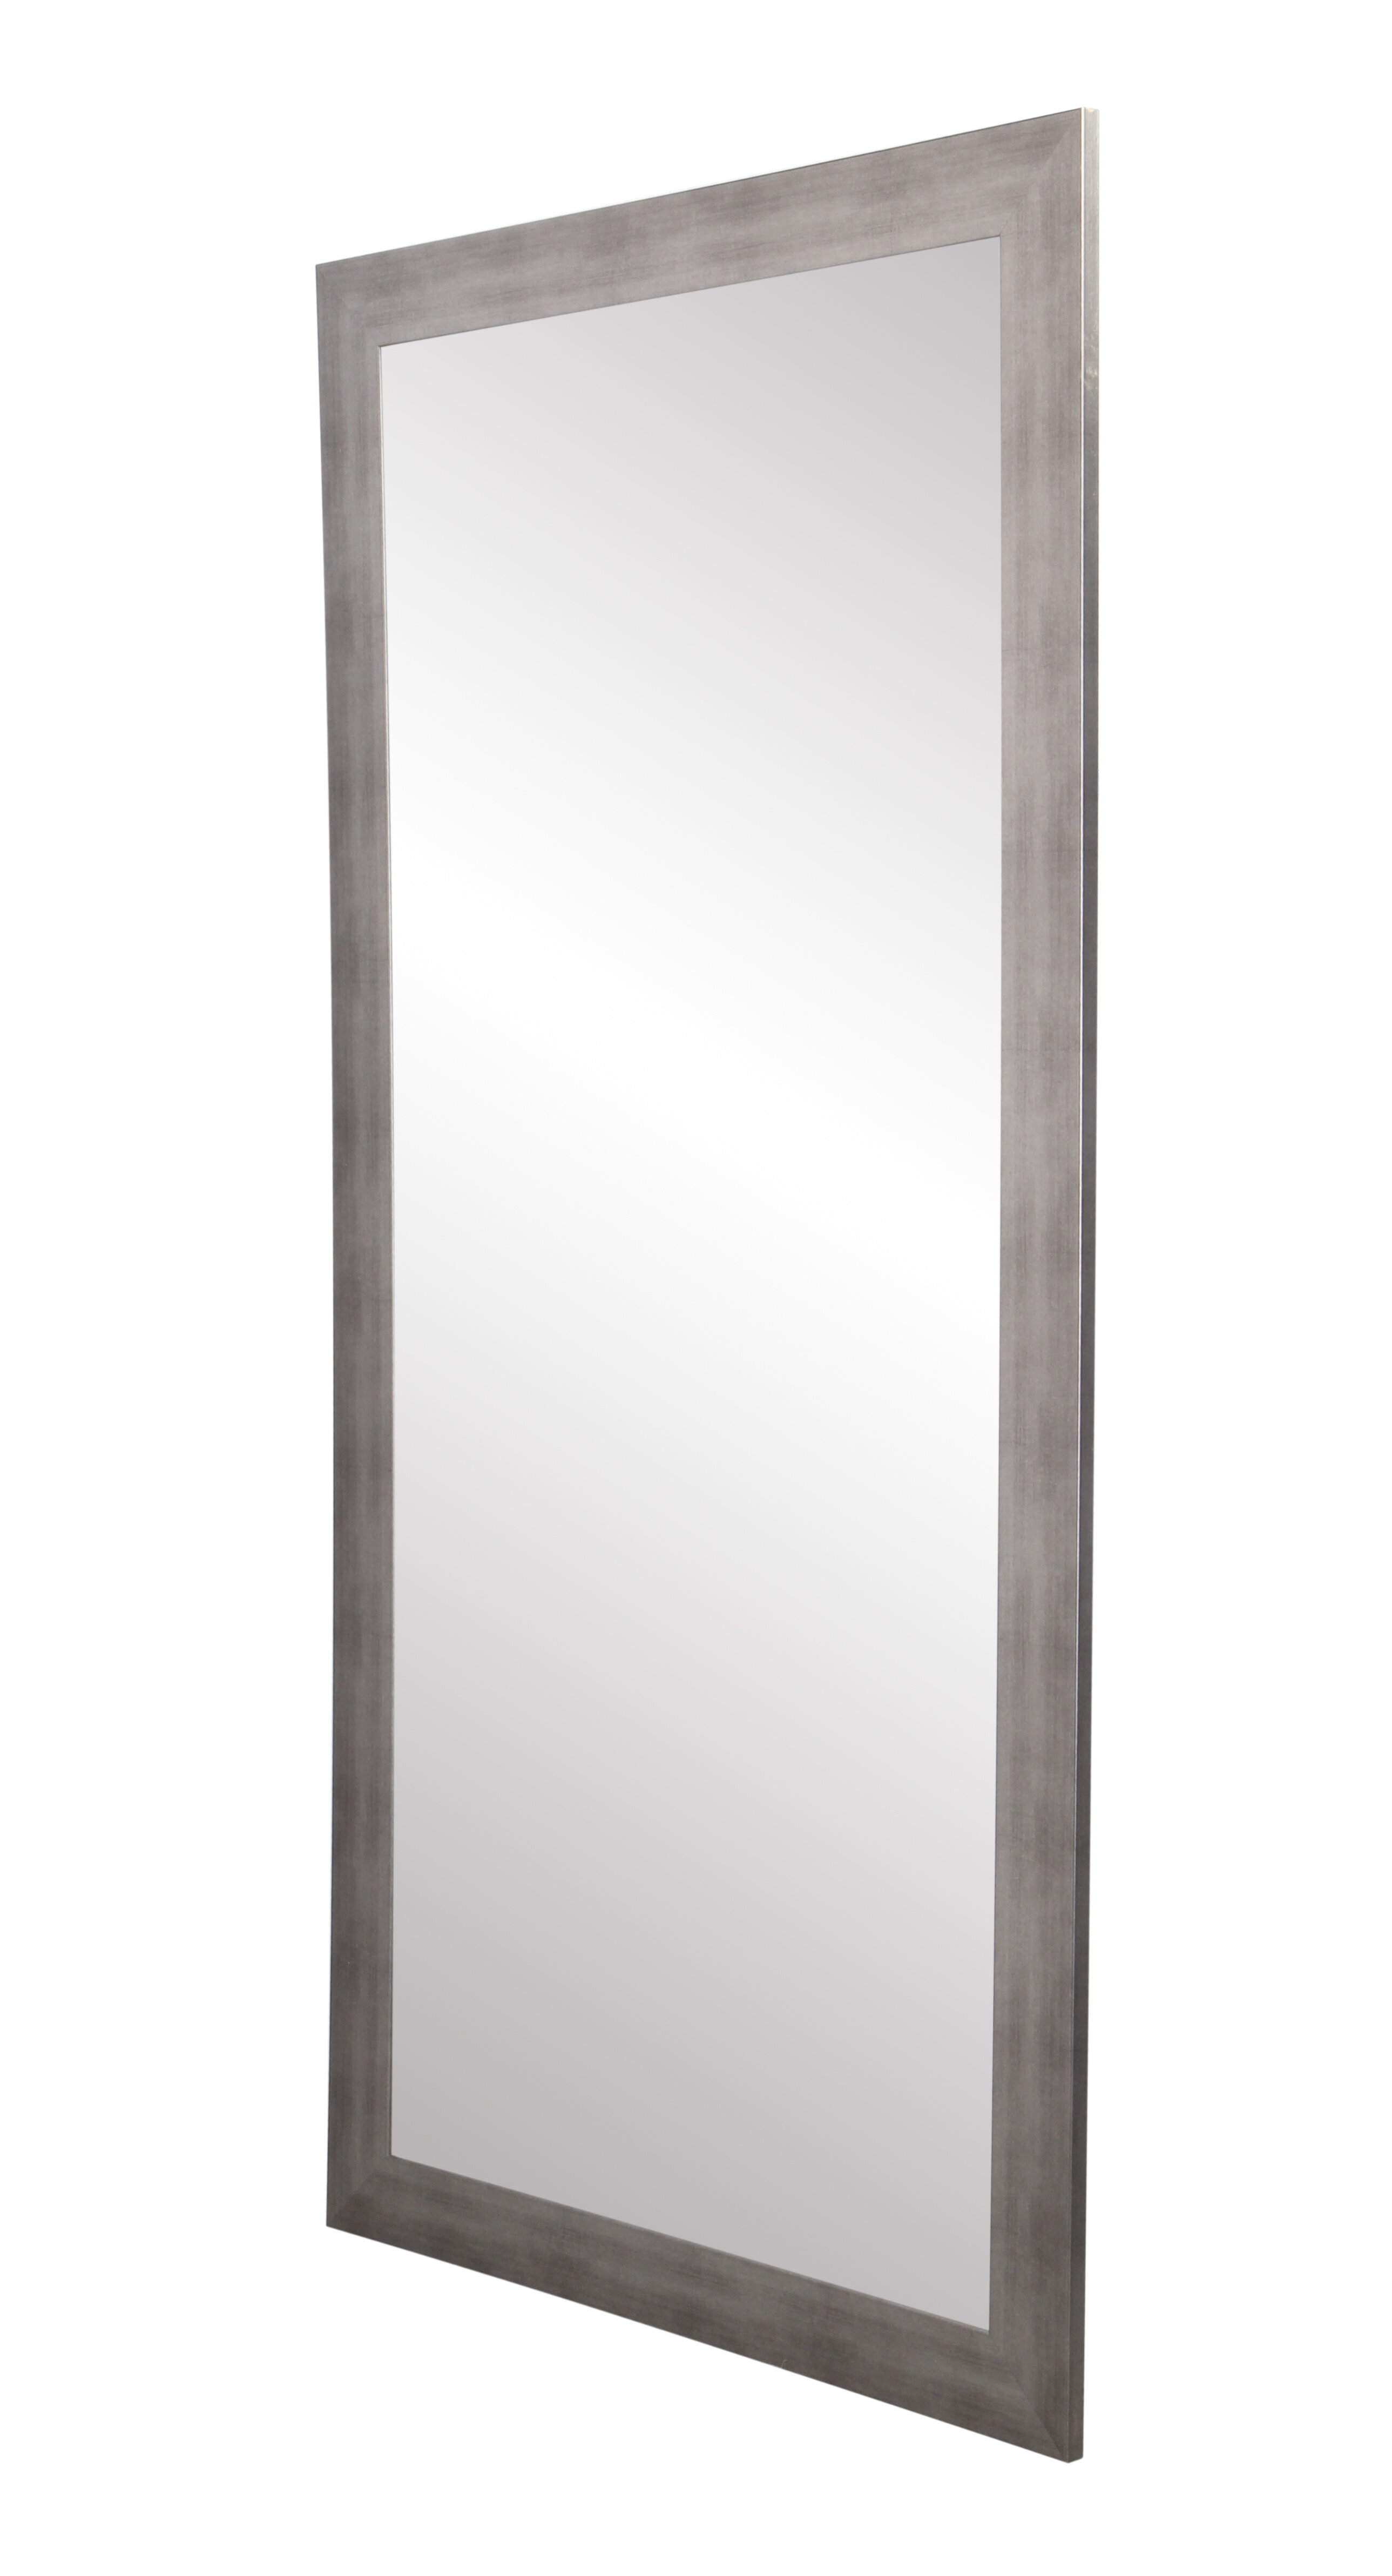 Rosecliff Heights Muted Cool Full Length Wall Mirror Wayfair